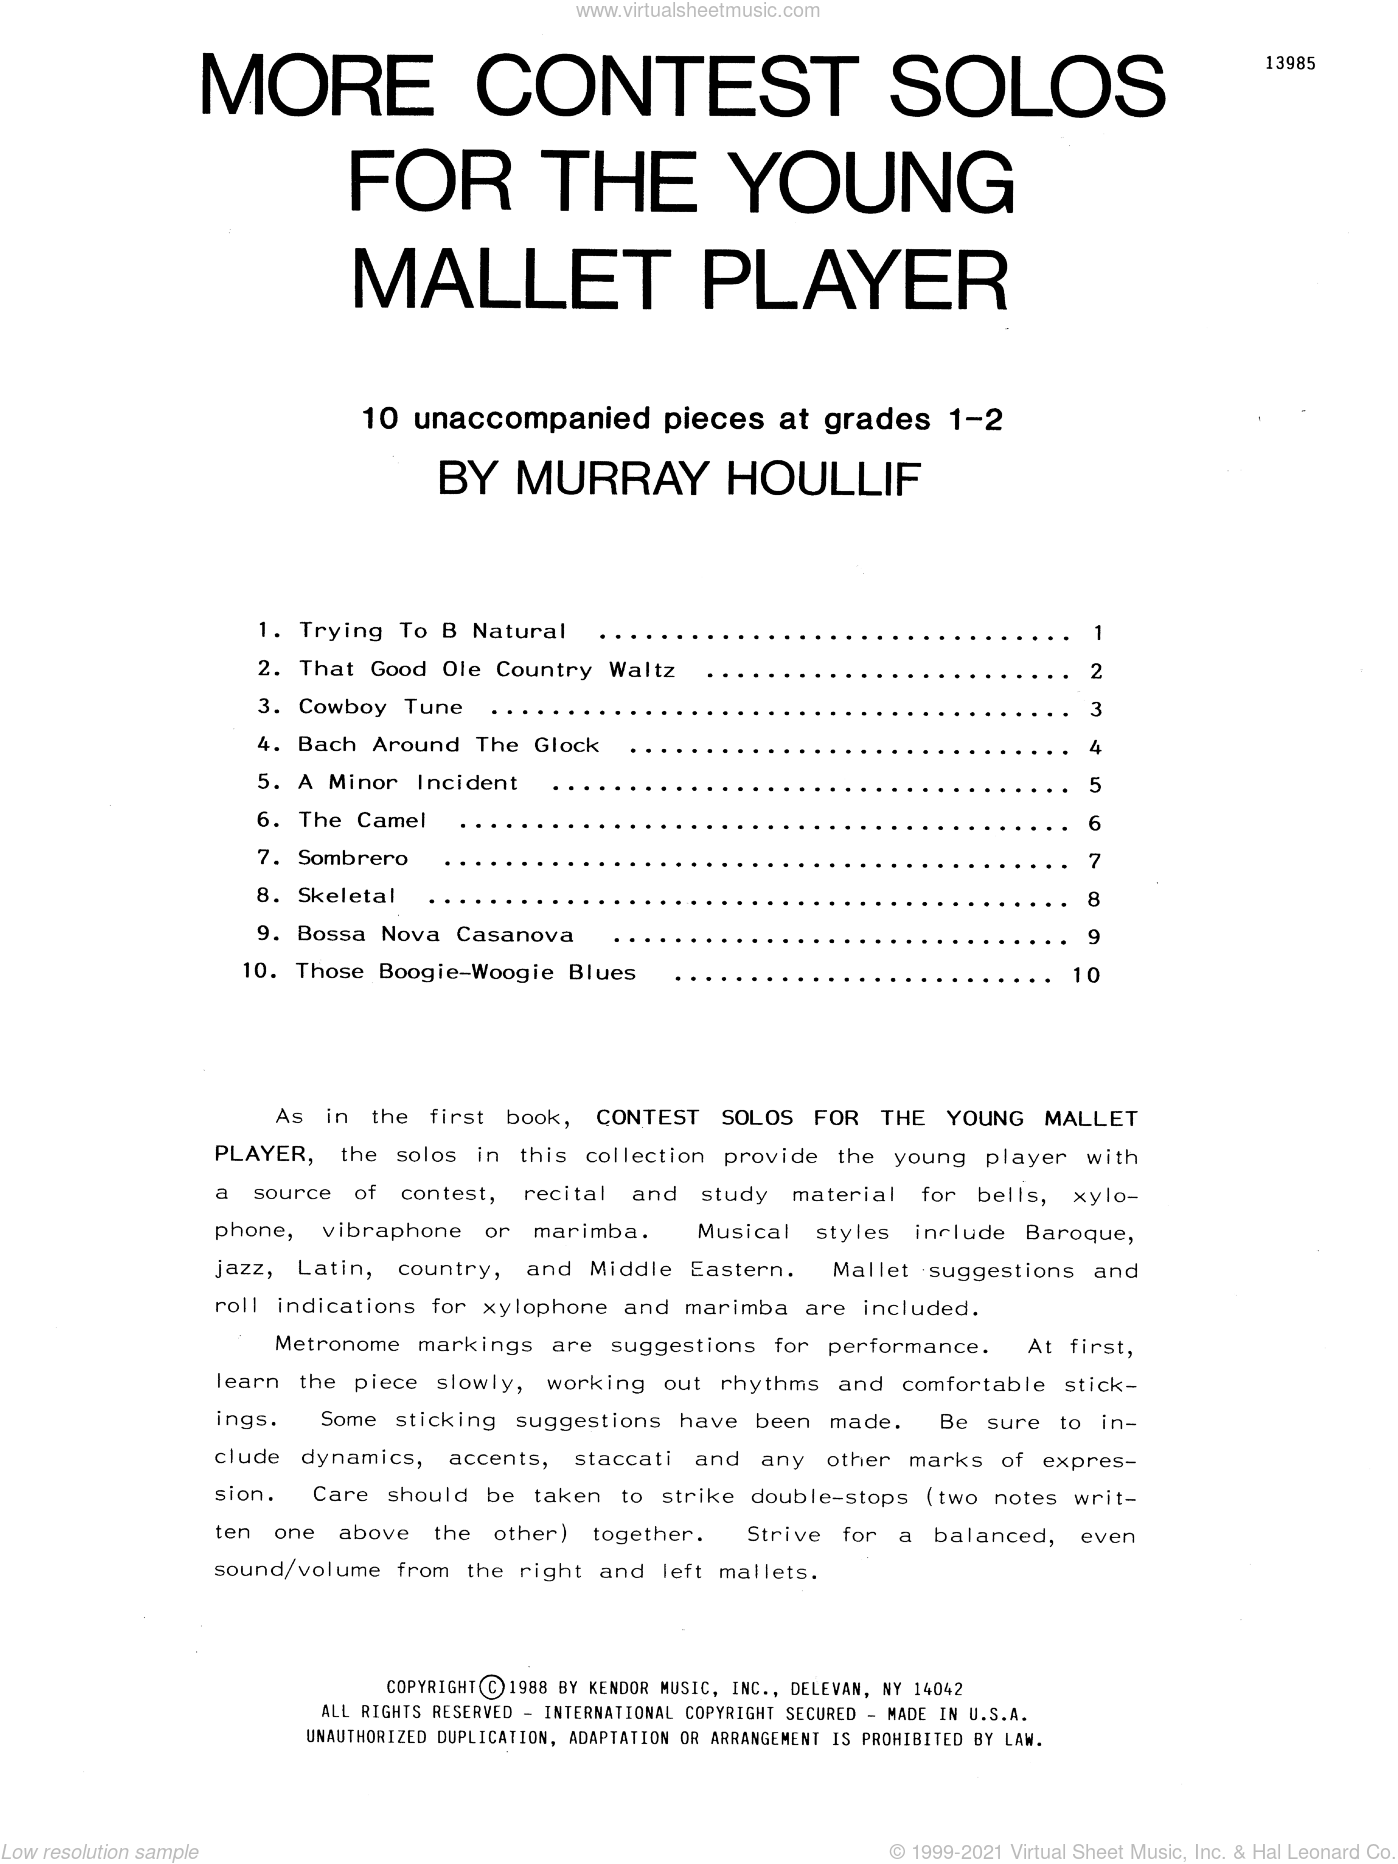 More Contest Solos For The Young Mallet Player sheet music for percussions by Houllif, classical score, intermediate skill level